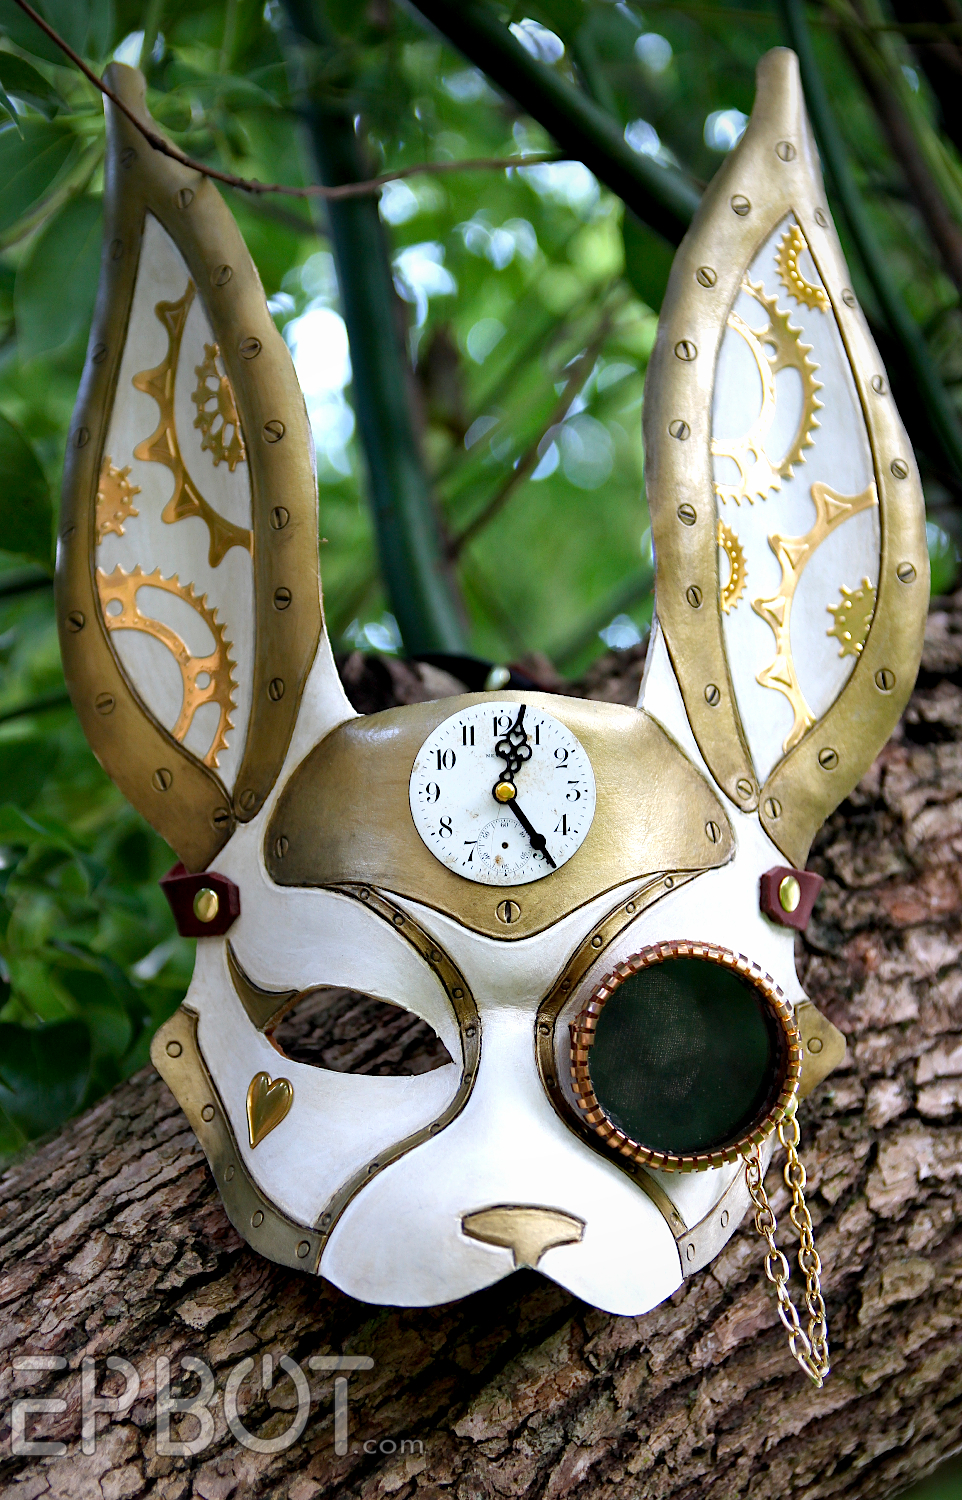 Epbot's rabbit mask tutorial